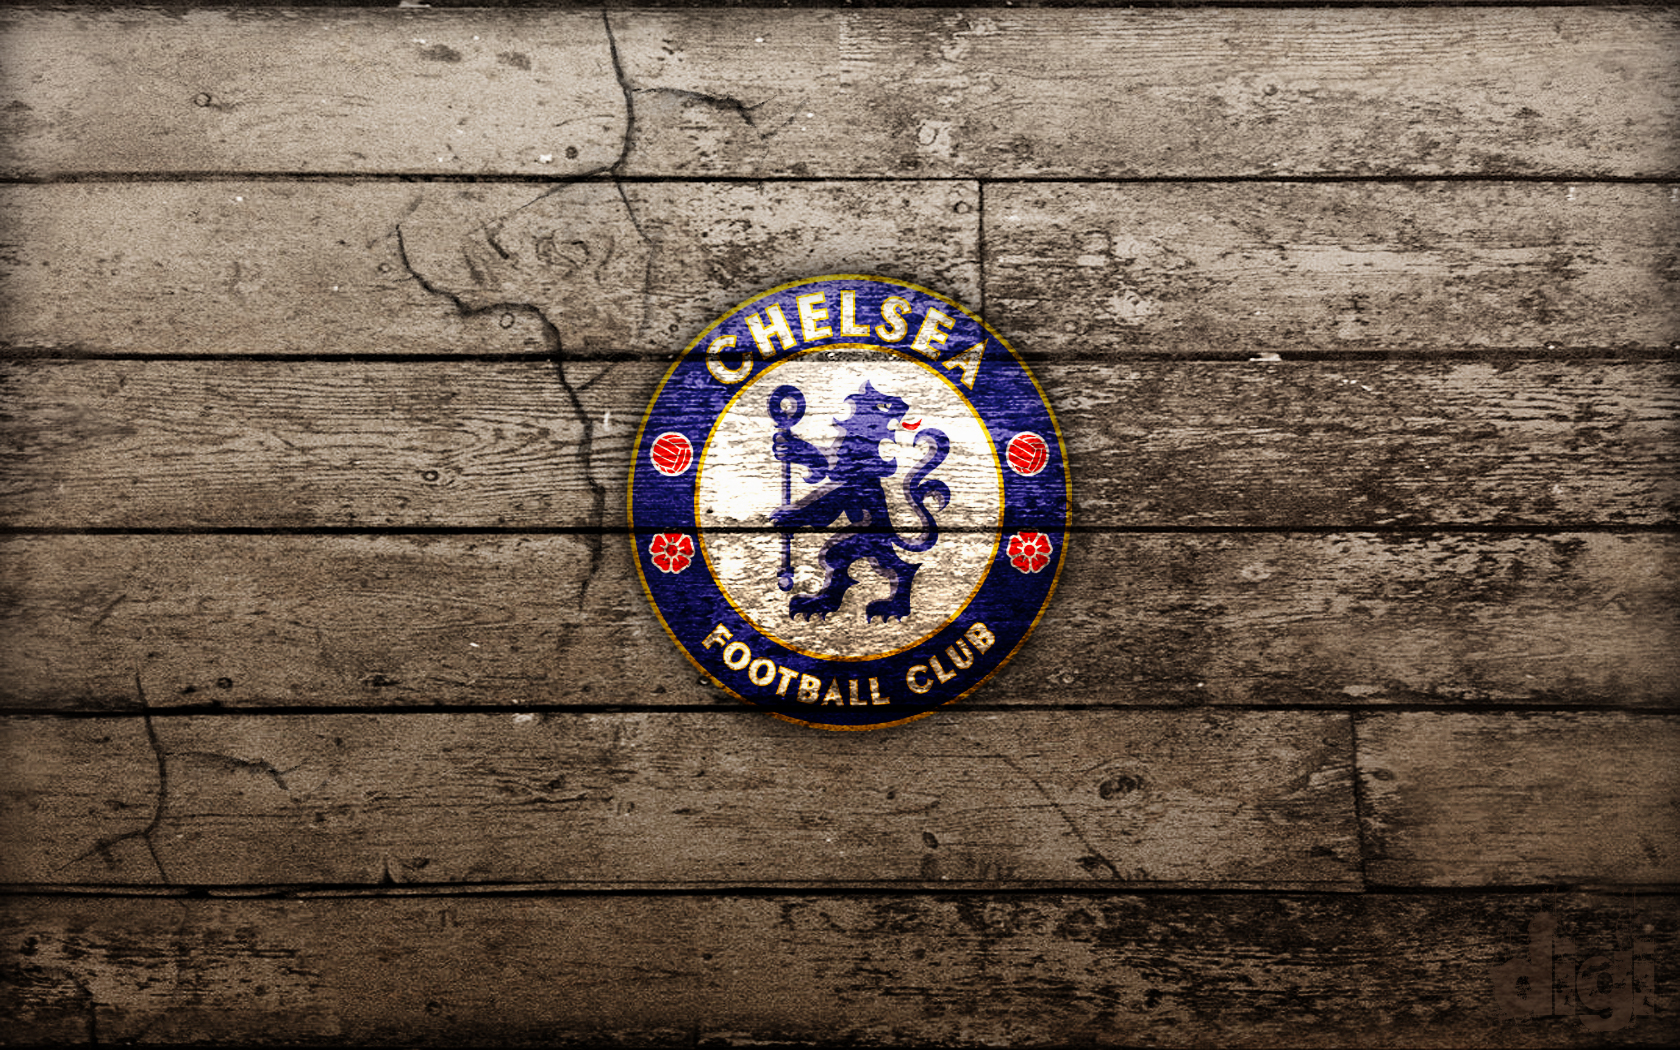 Awesome Chelsea FC Wallpaper That Will Revitalize Any Desktop | Thomas ...